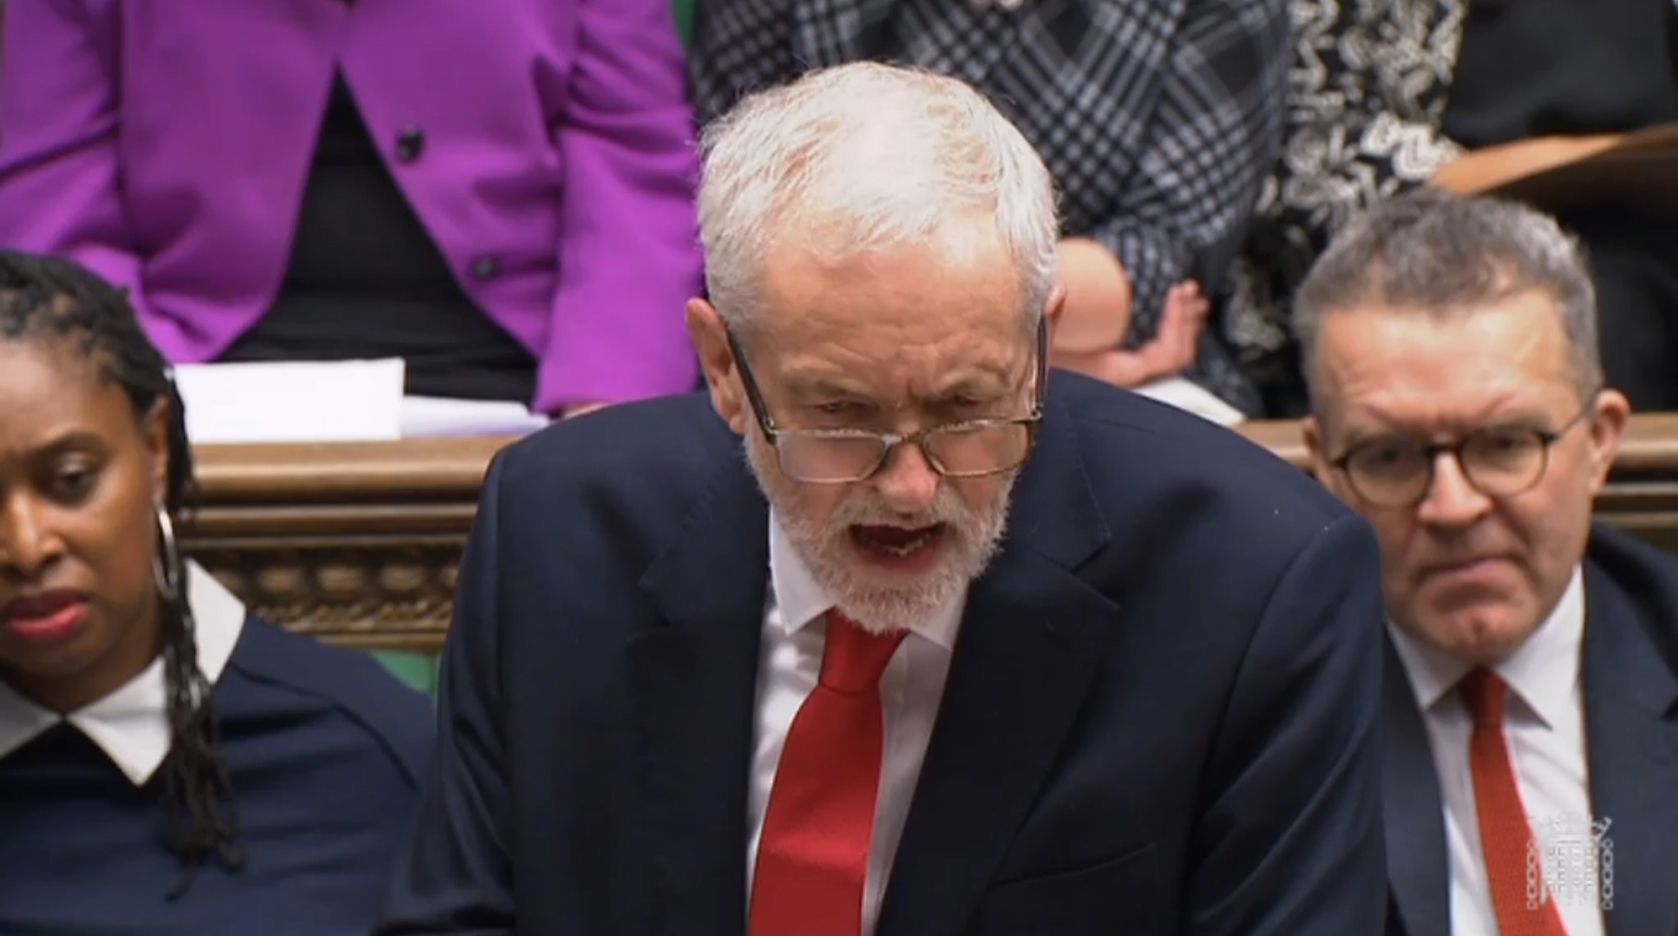 PM under pressure as Corbyn threatens no-confidence vote